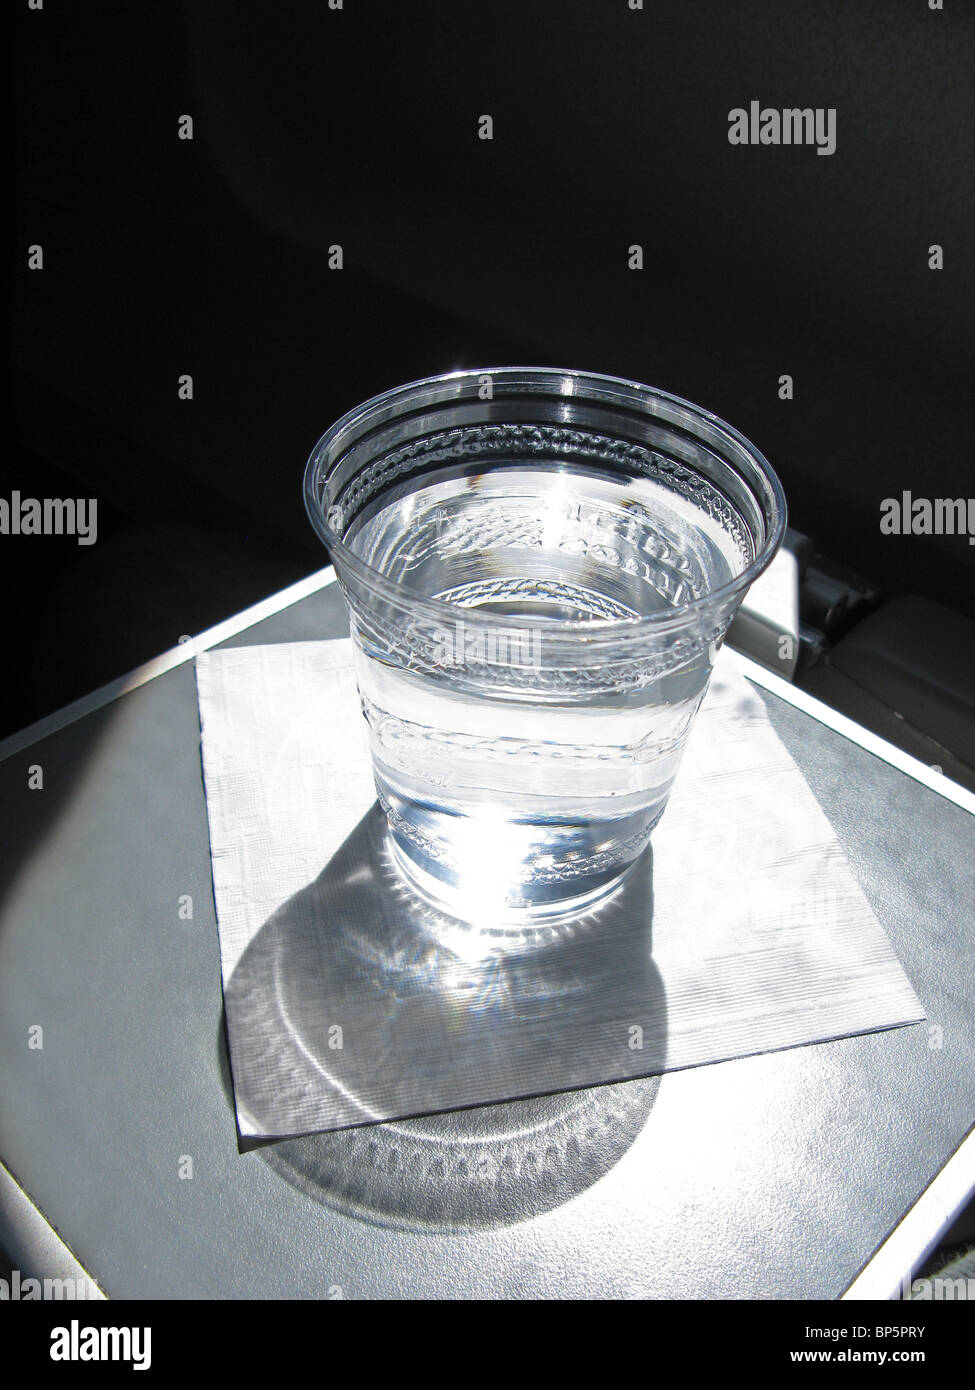 A plastic cup filled with water sitting on a white napkin on a commercial airplane's seat tray with strong window - Stock Image